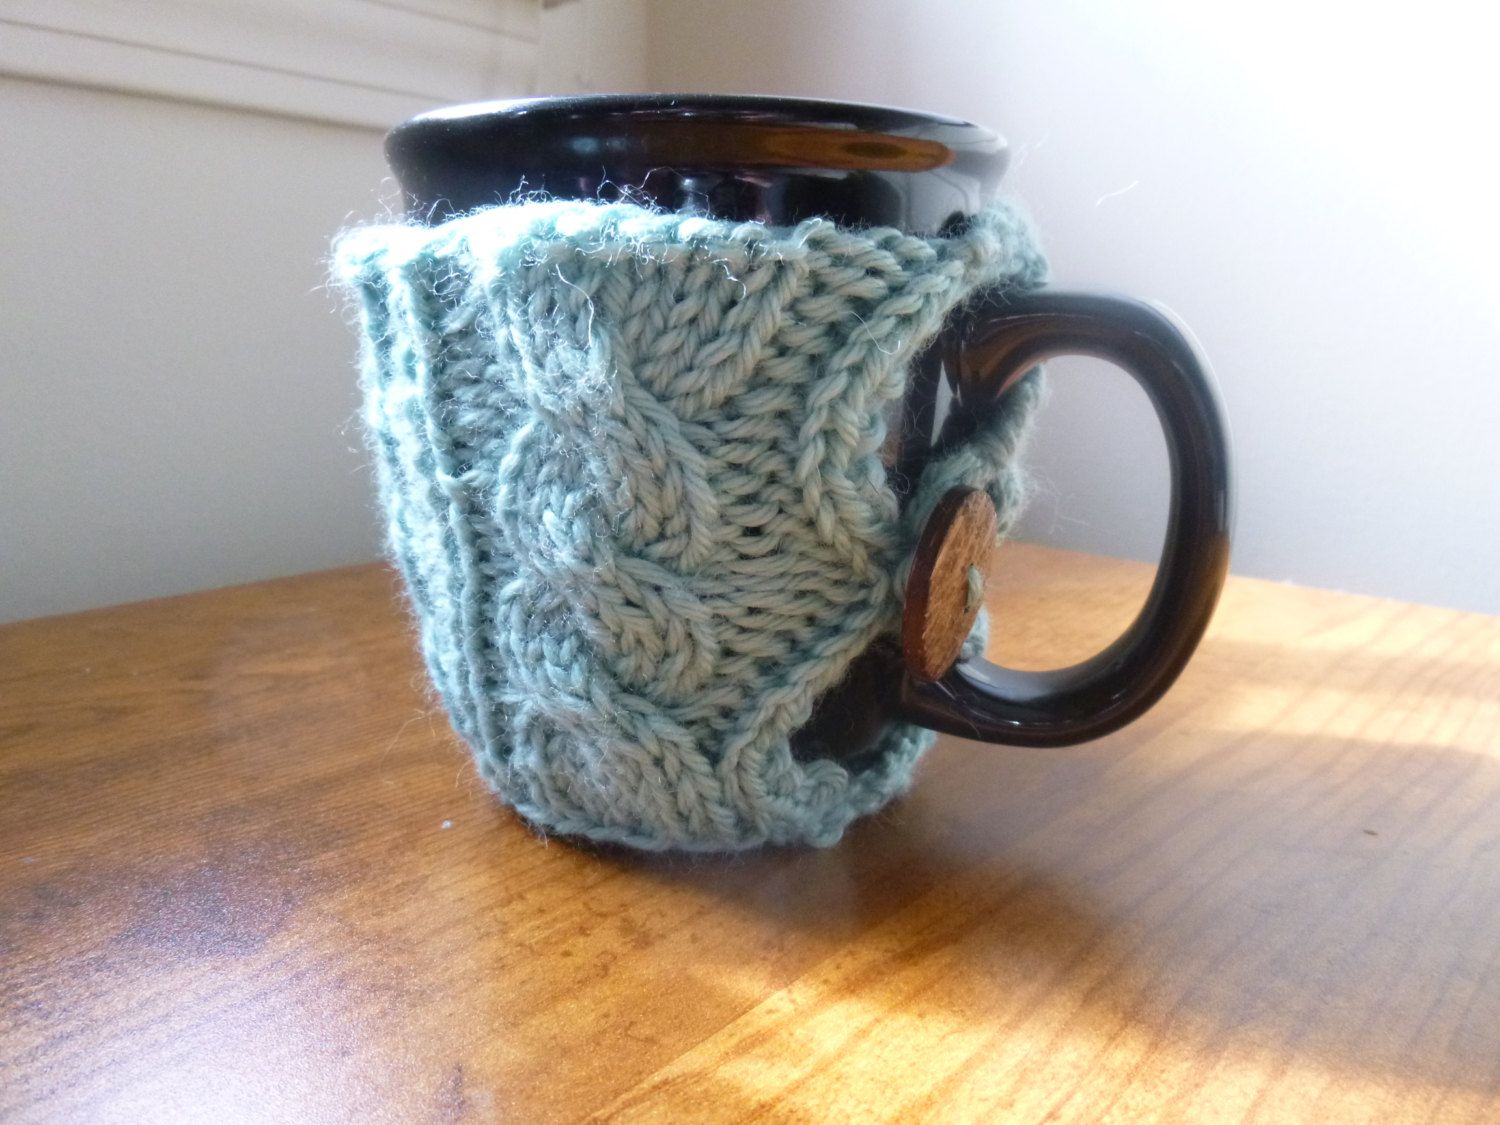 Hand knit tea/coffee cup cozy by LittleBoPress on Etsy https://www.etsy.com/listing/166332437/hand-knit-teacoffee-cup-cozy